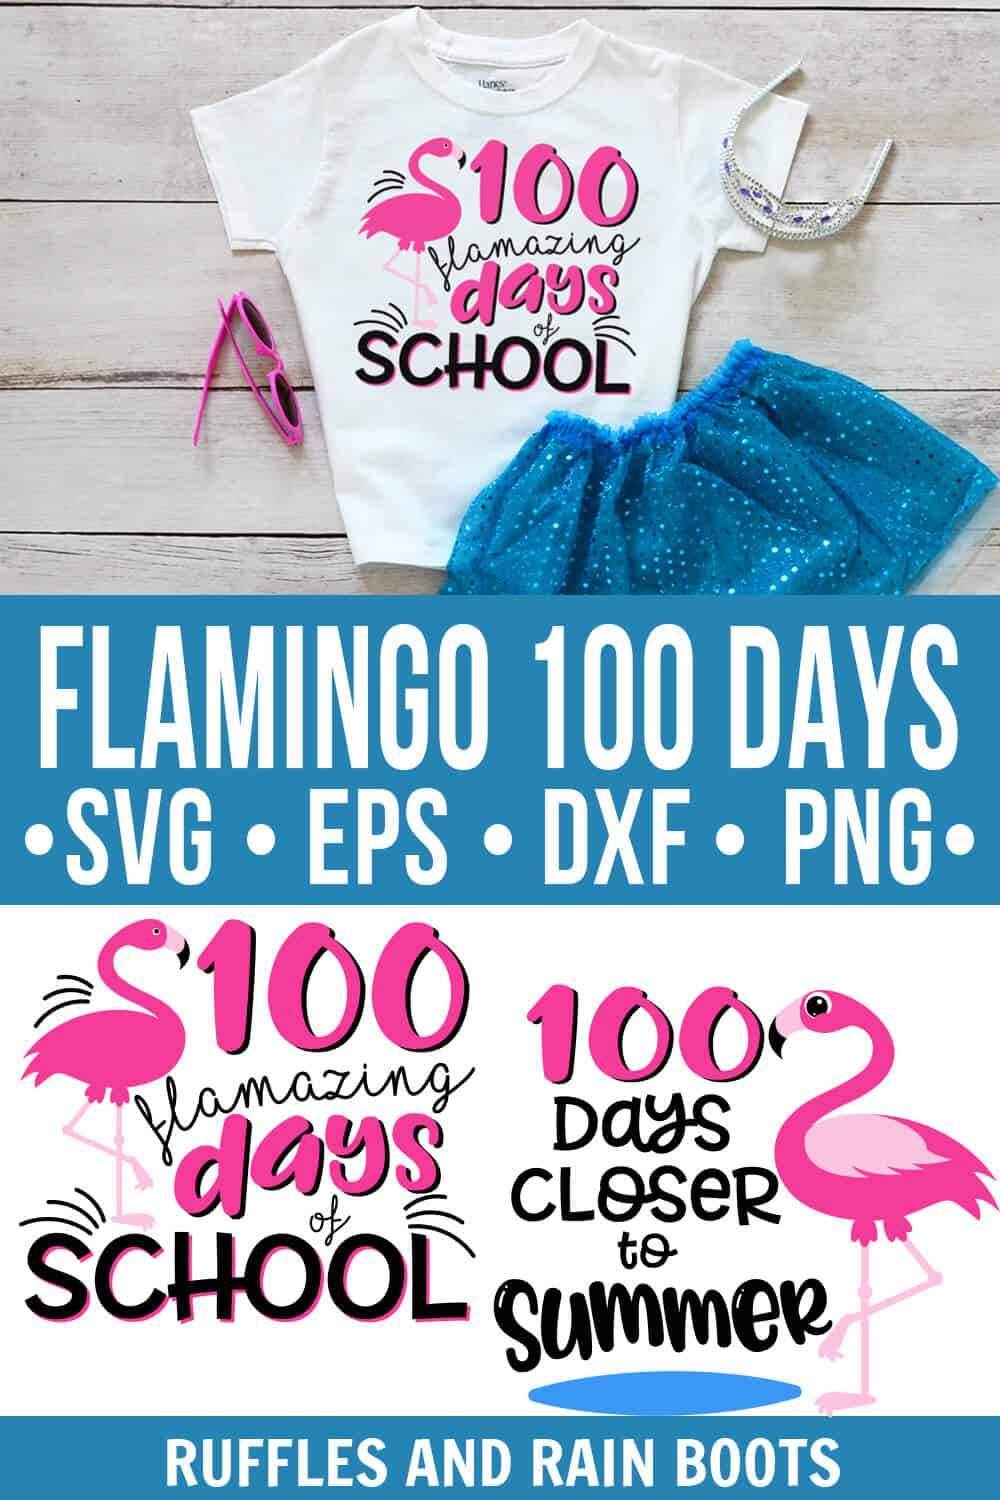 photo collage of 100 Days of School Flamingo cut file bundle for Cricut Silhouette with text which reads flamingo 100 days svg eps dxf png